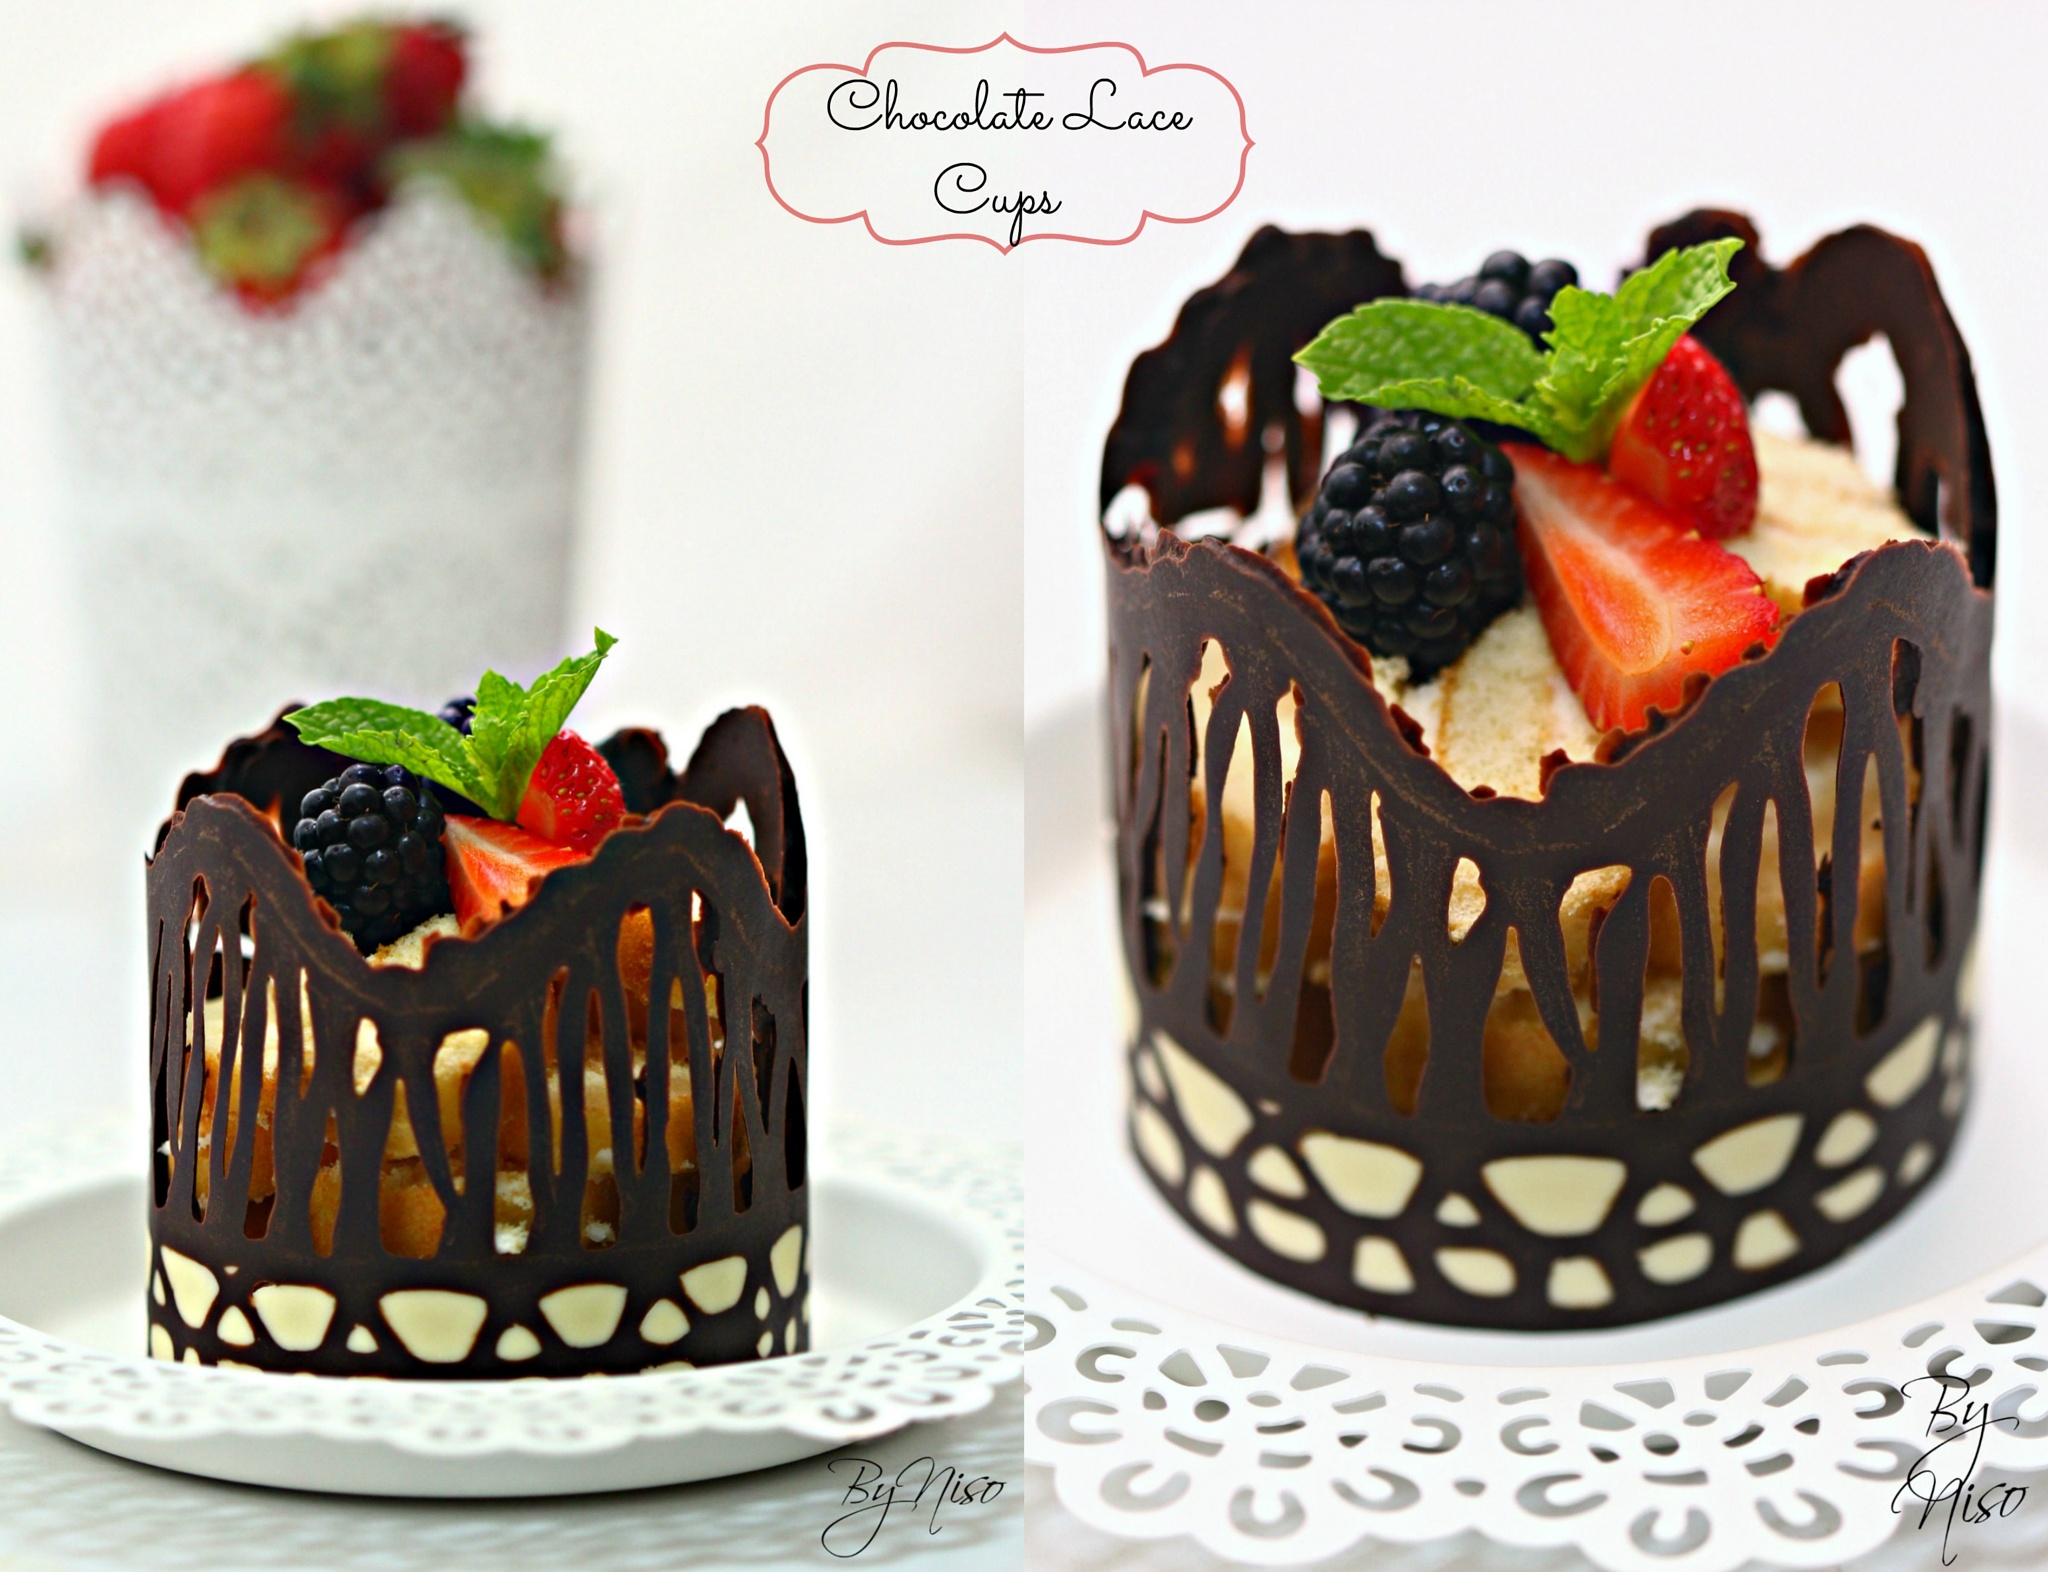 chocolate lace cups by Nisreen Rahhal